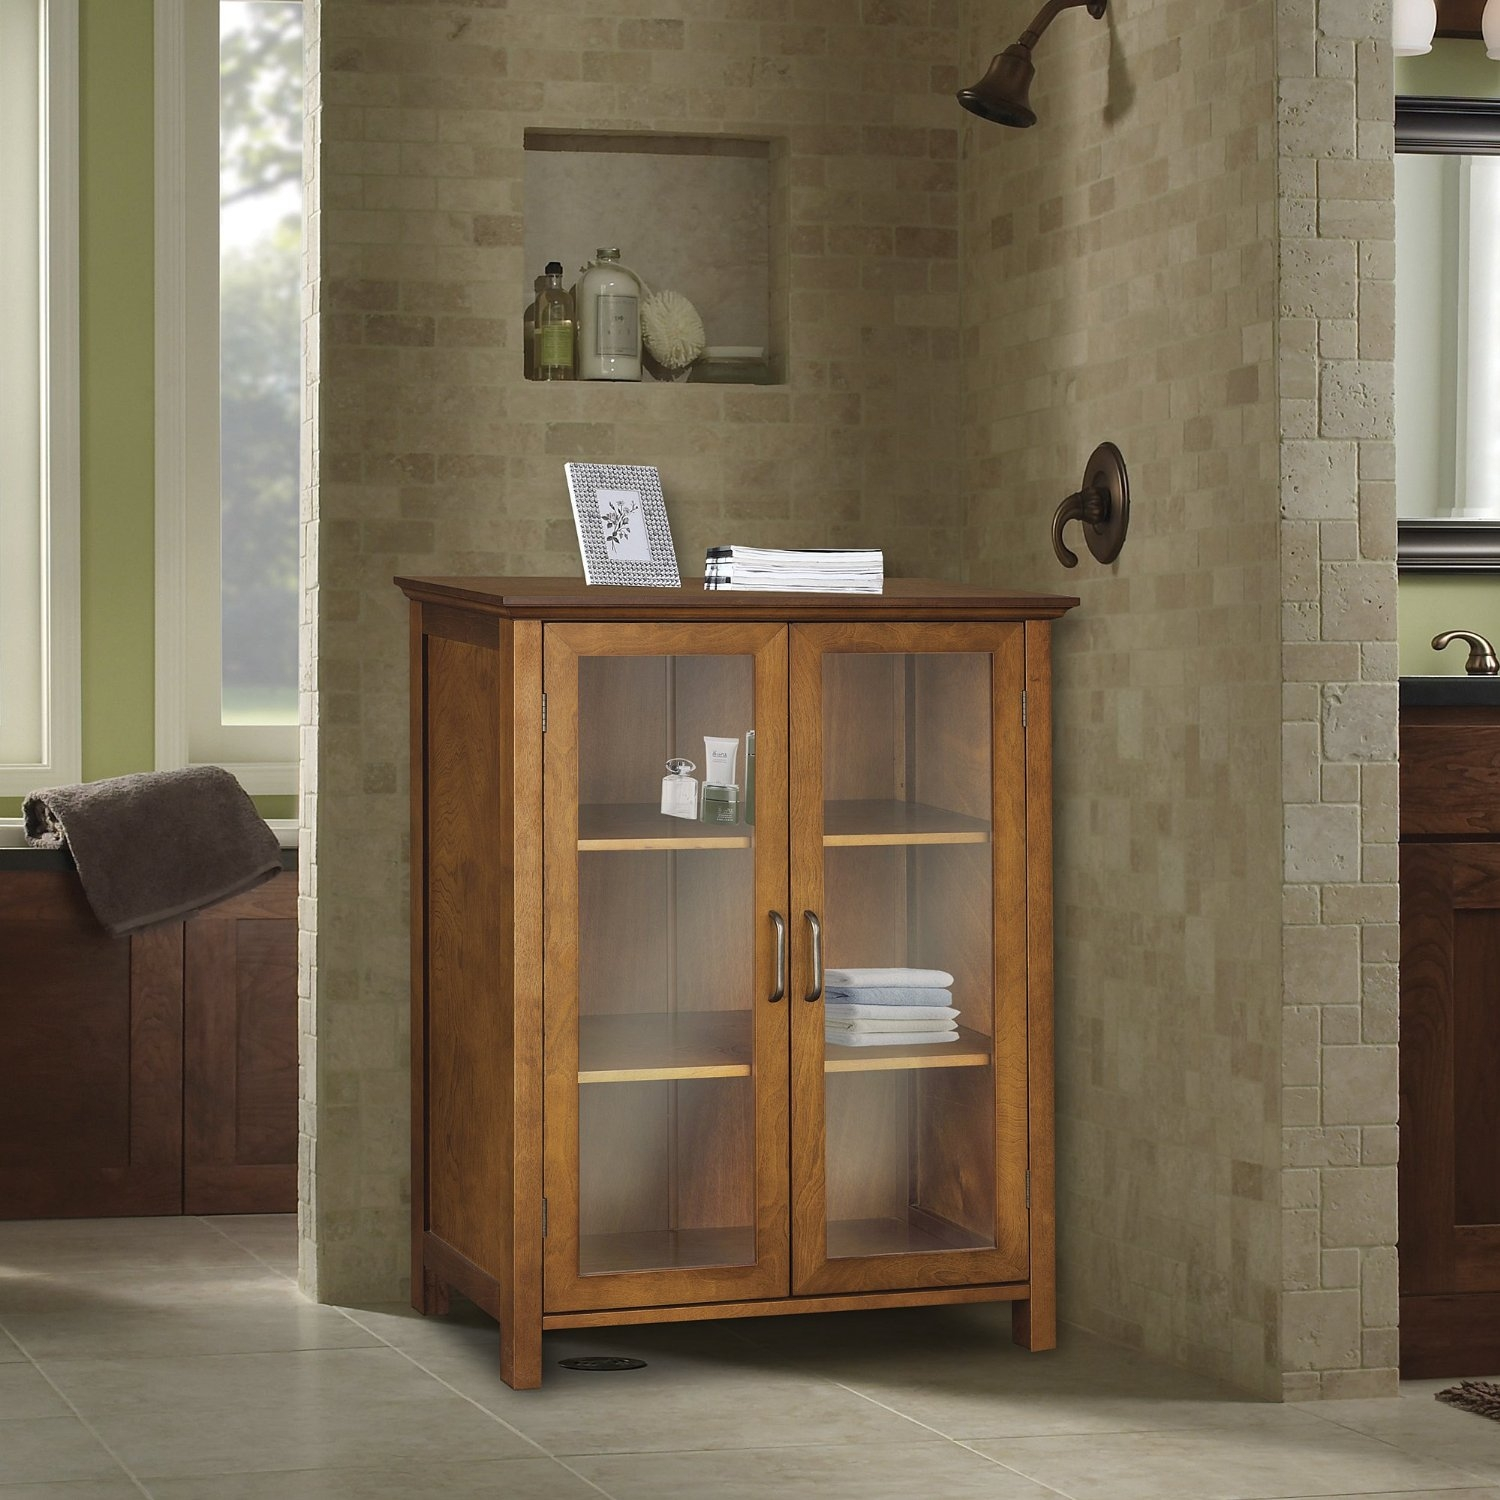 Oak Finish Bathroom Floor Cabinet With 2 Glass Doors Storage